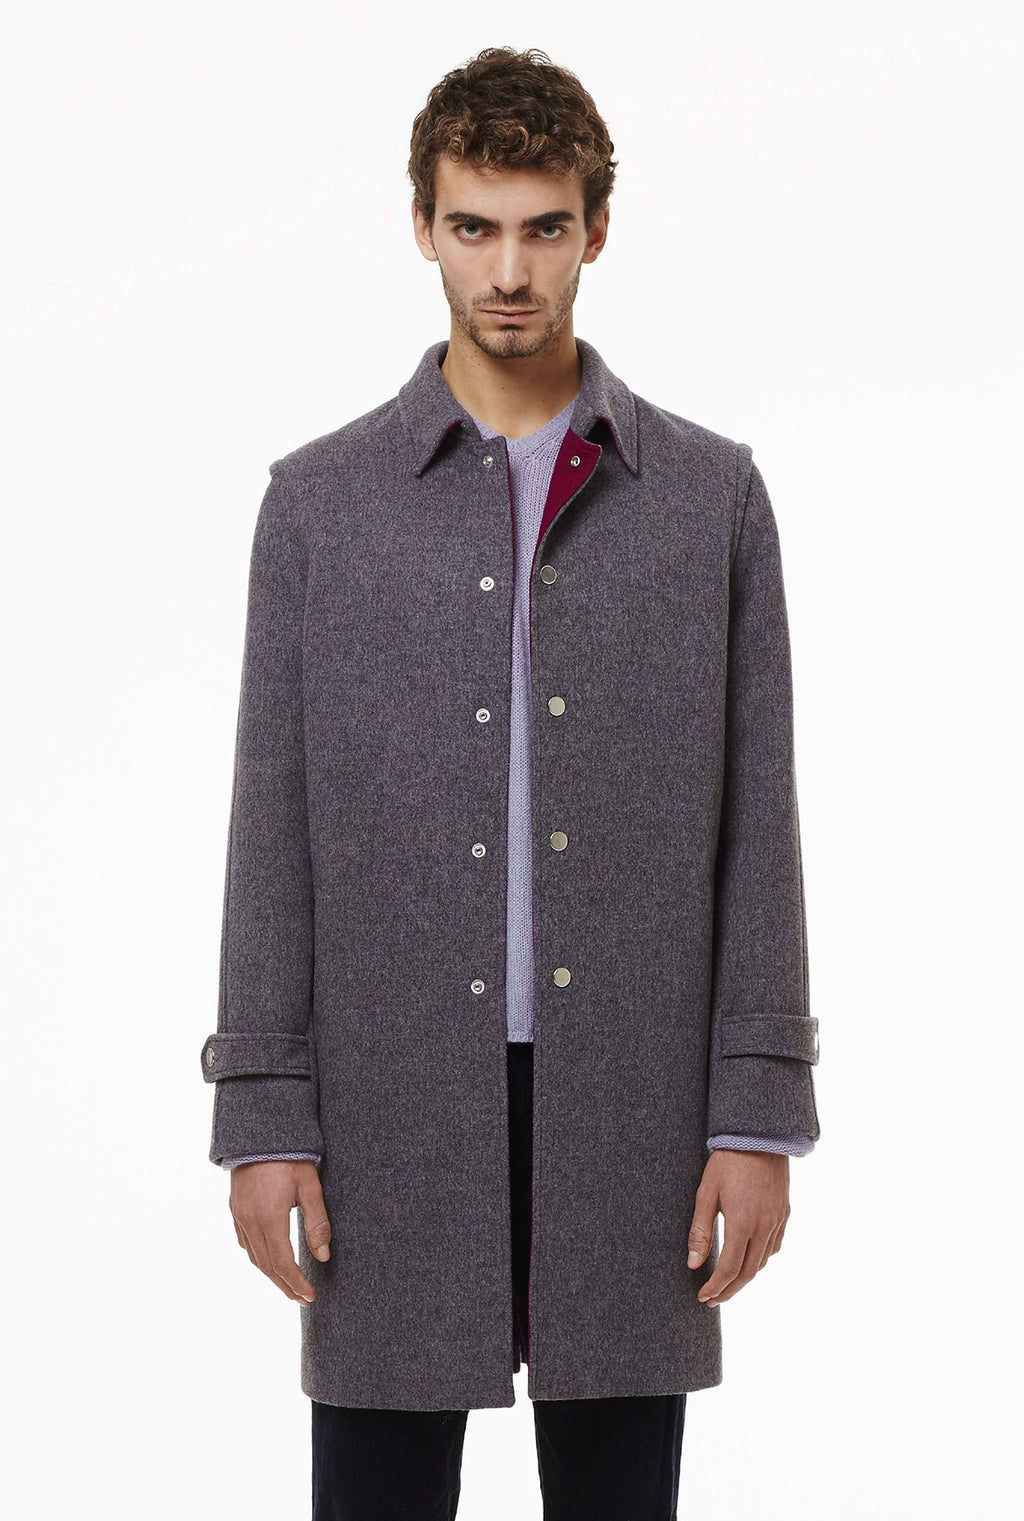 Loden coat with automatic snaps.